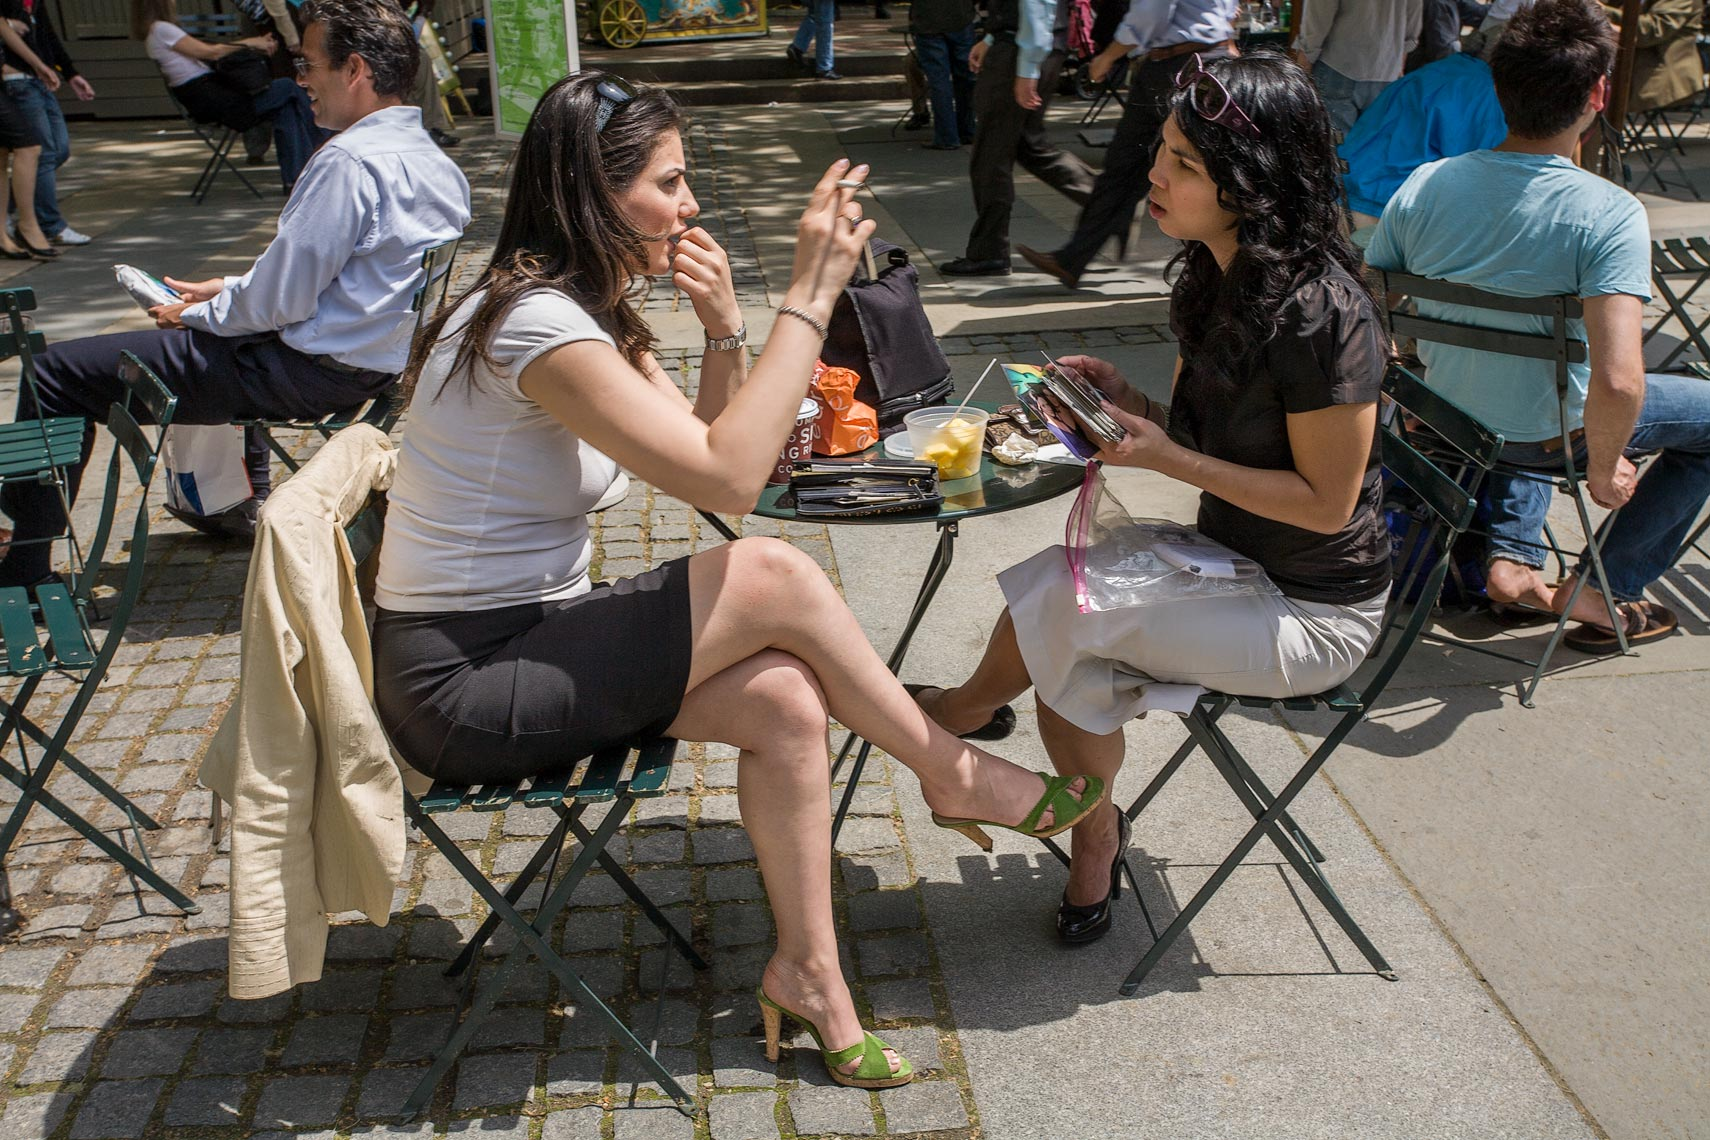 Two women having lunch